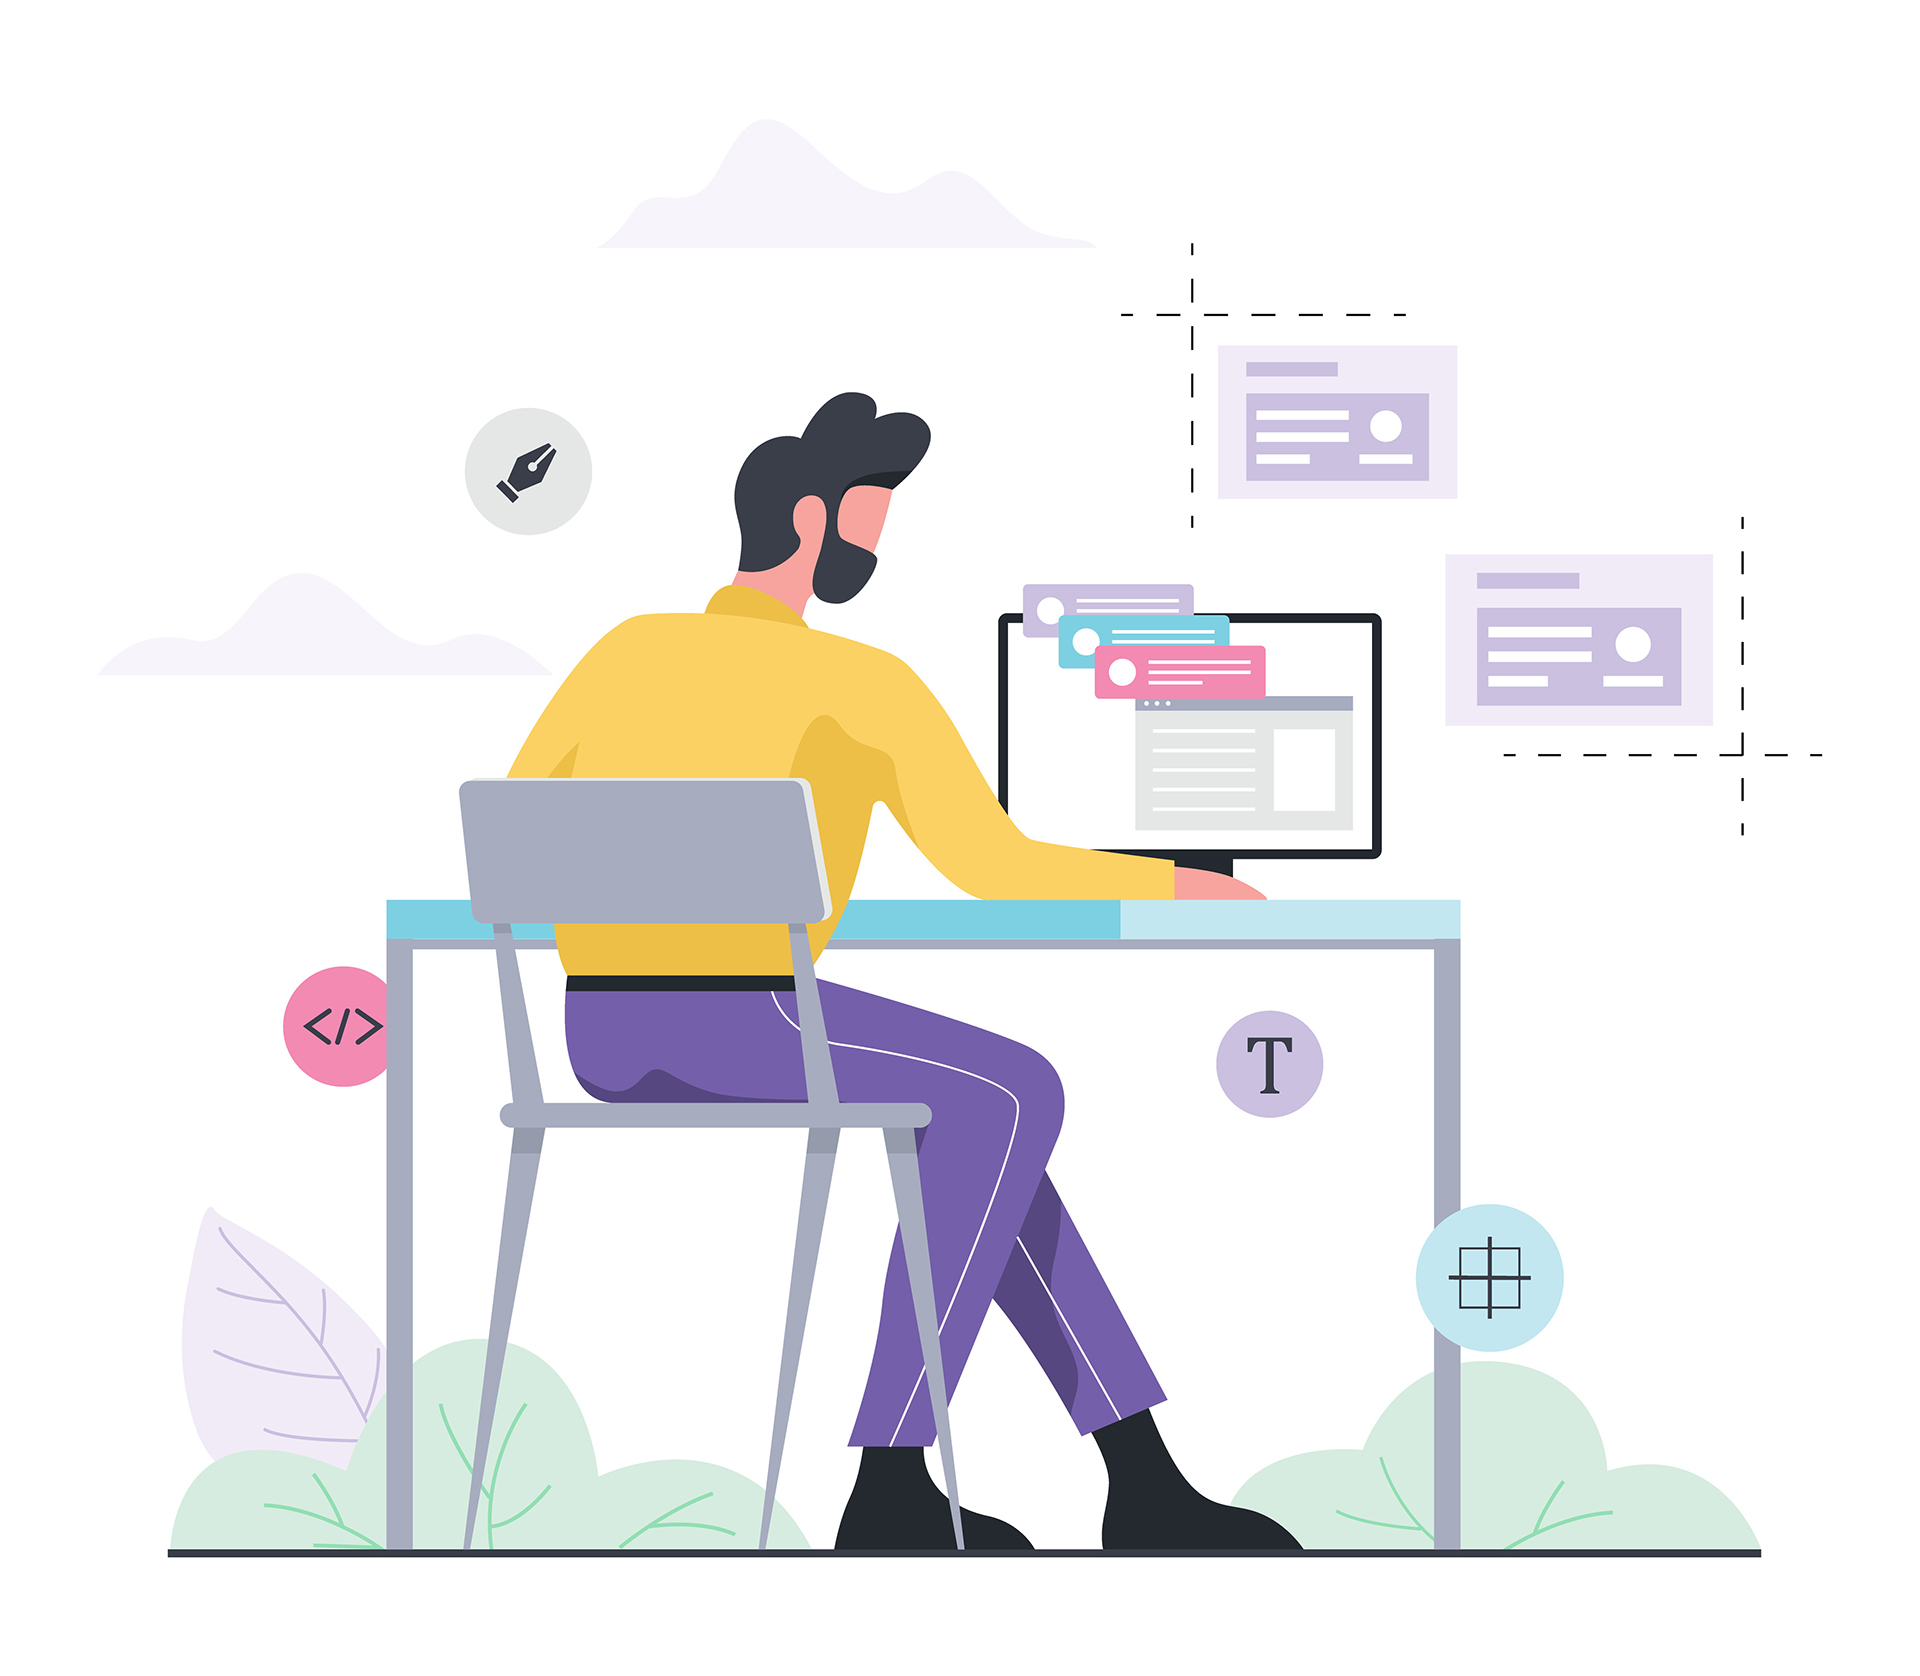 Web design and programming concept. Man sitting at the desk. Isolated flat illustration